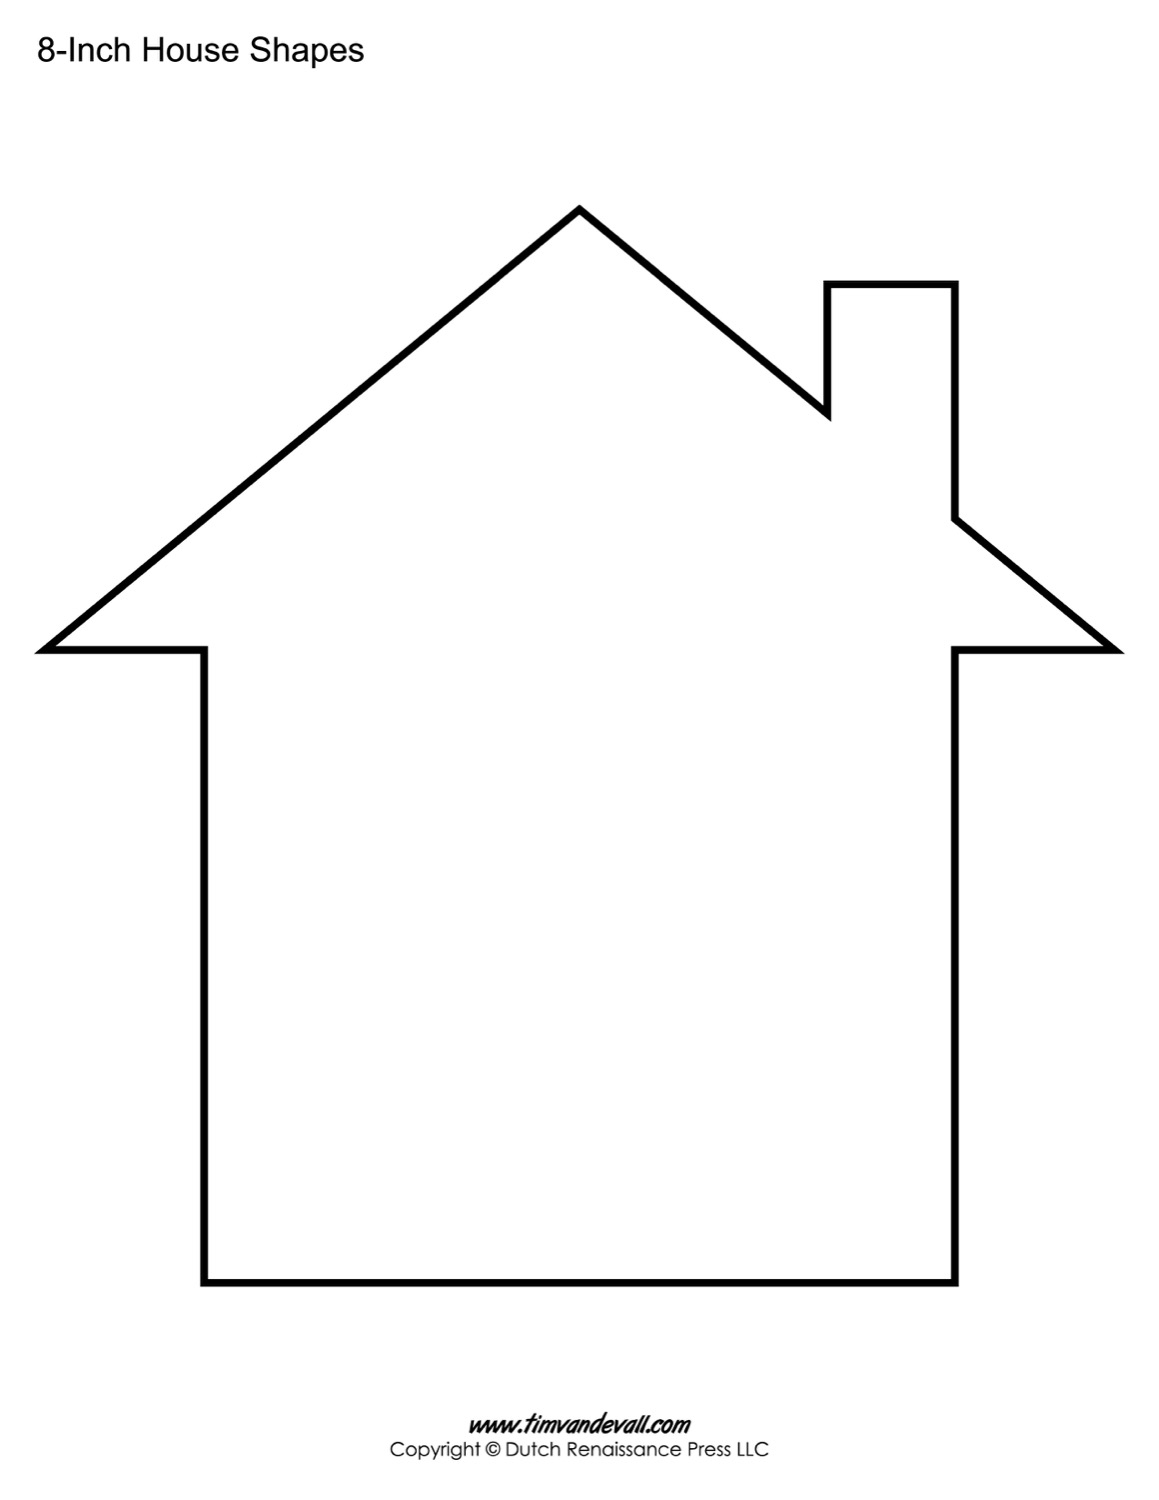 House templates free blank house shape pdfs for Home design templates